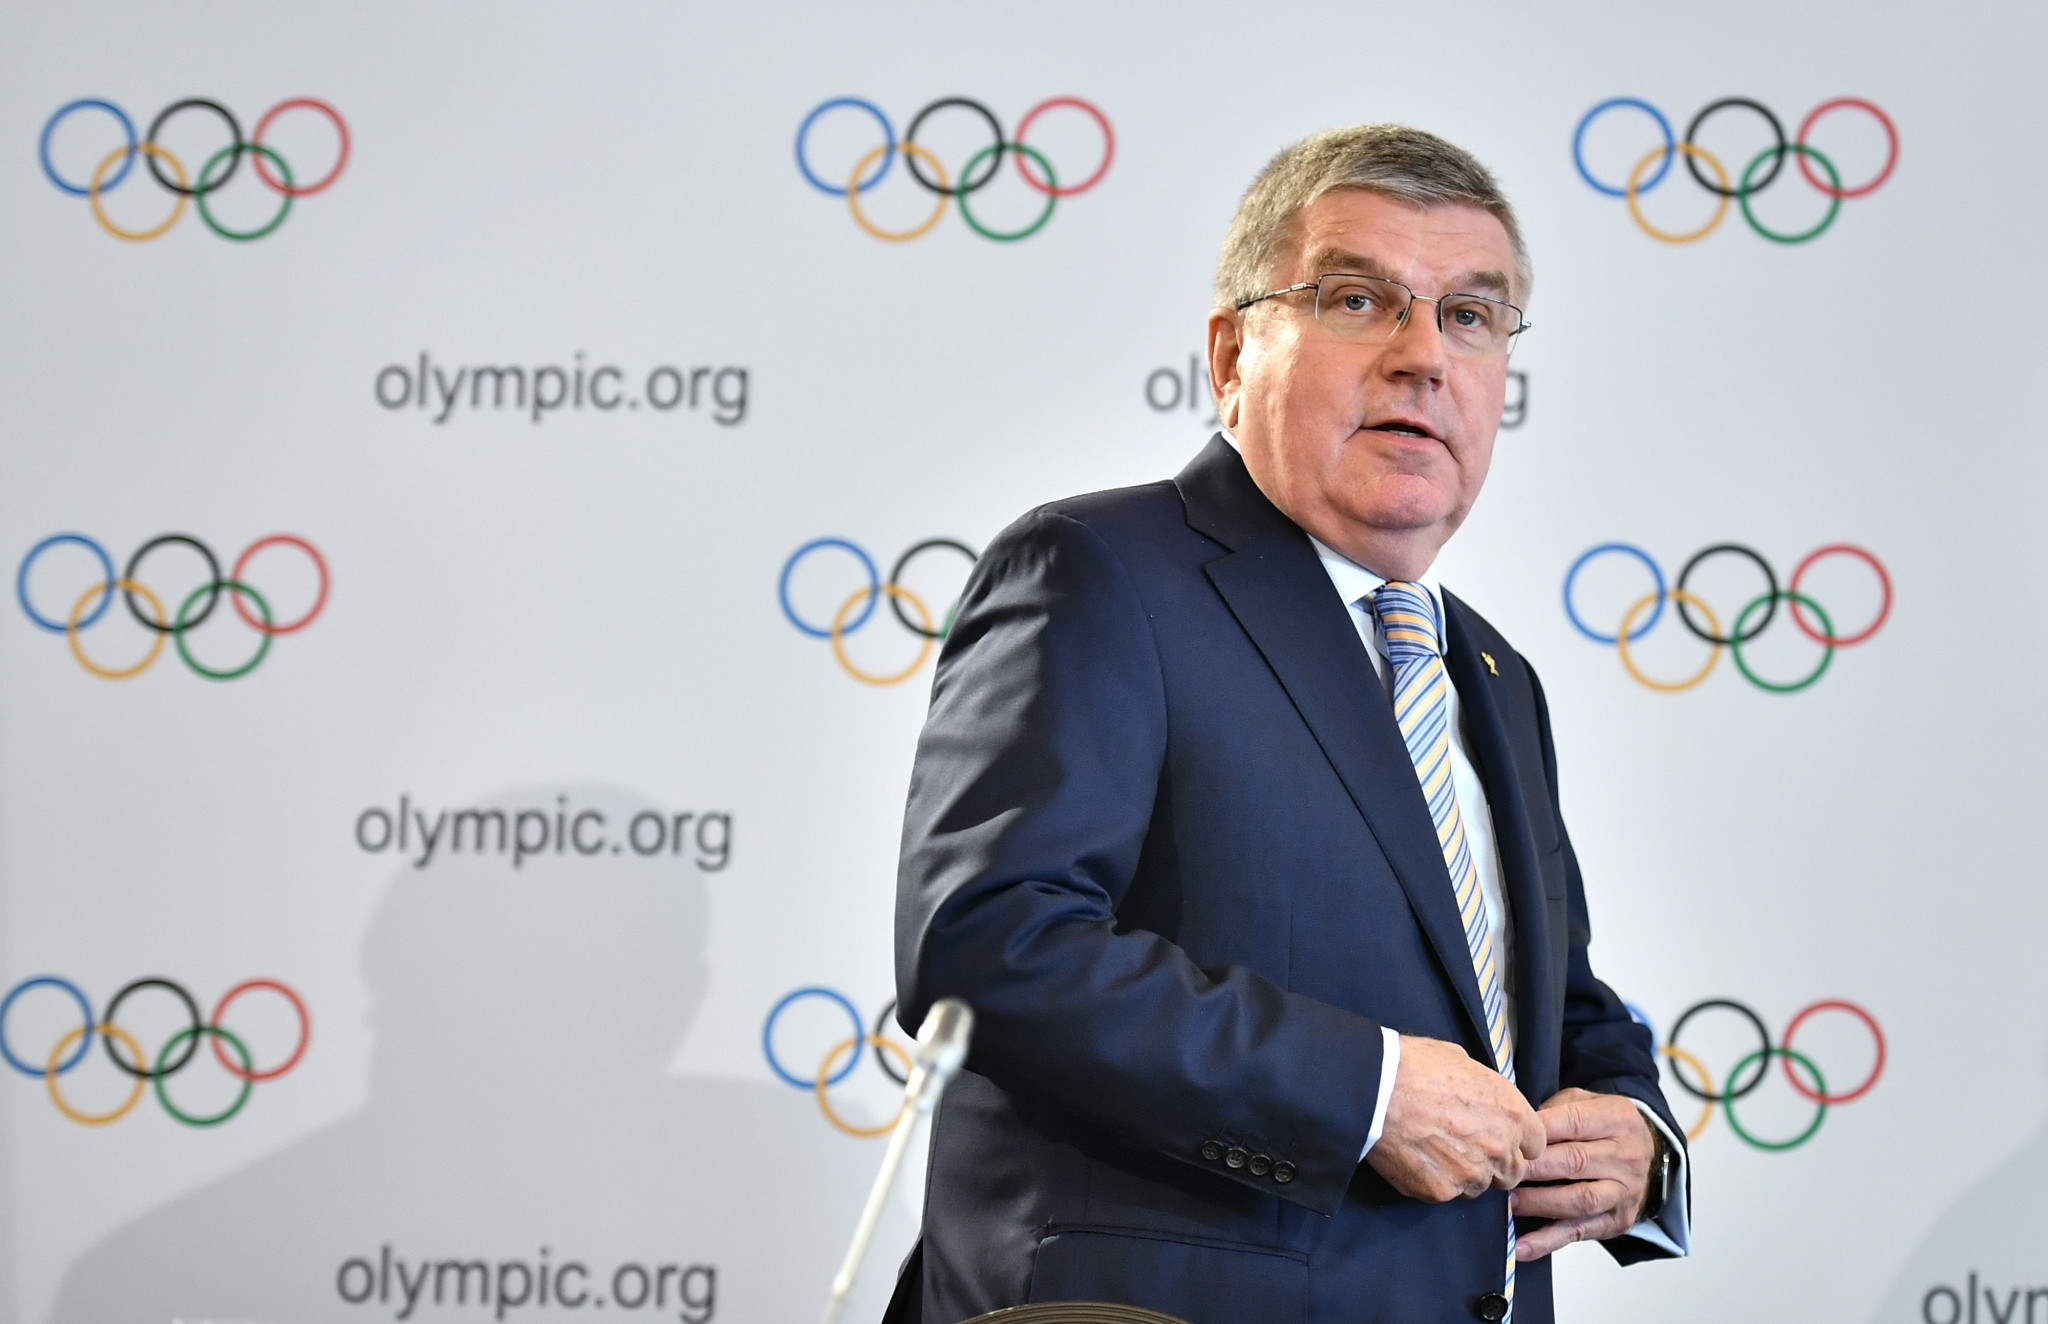 IOC President Thomas Bach has questioned the election of Gafur Rakhimov as interim AIBA President ©Getty Images